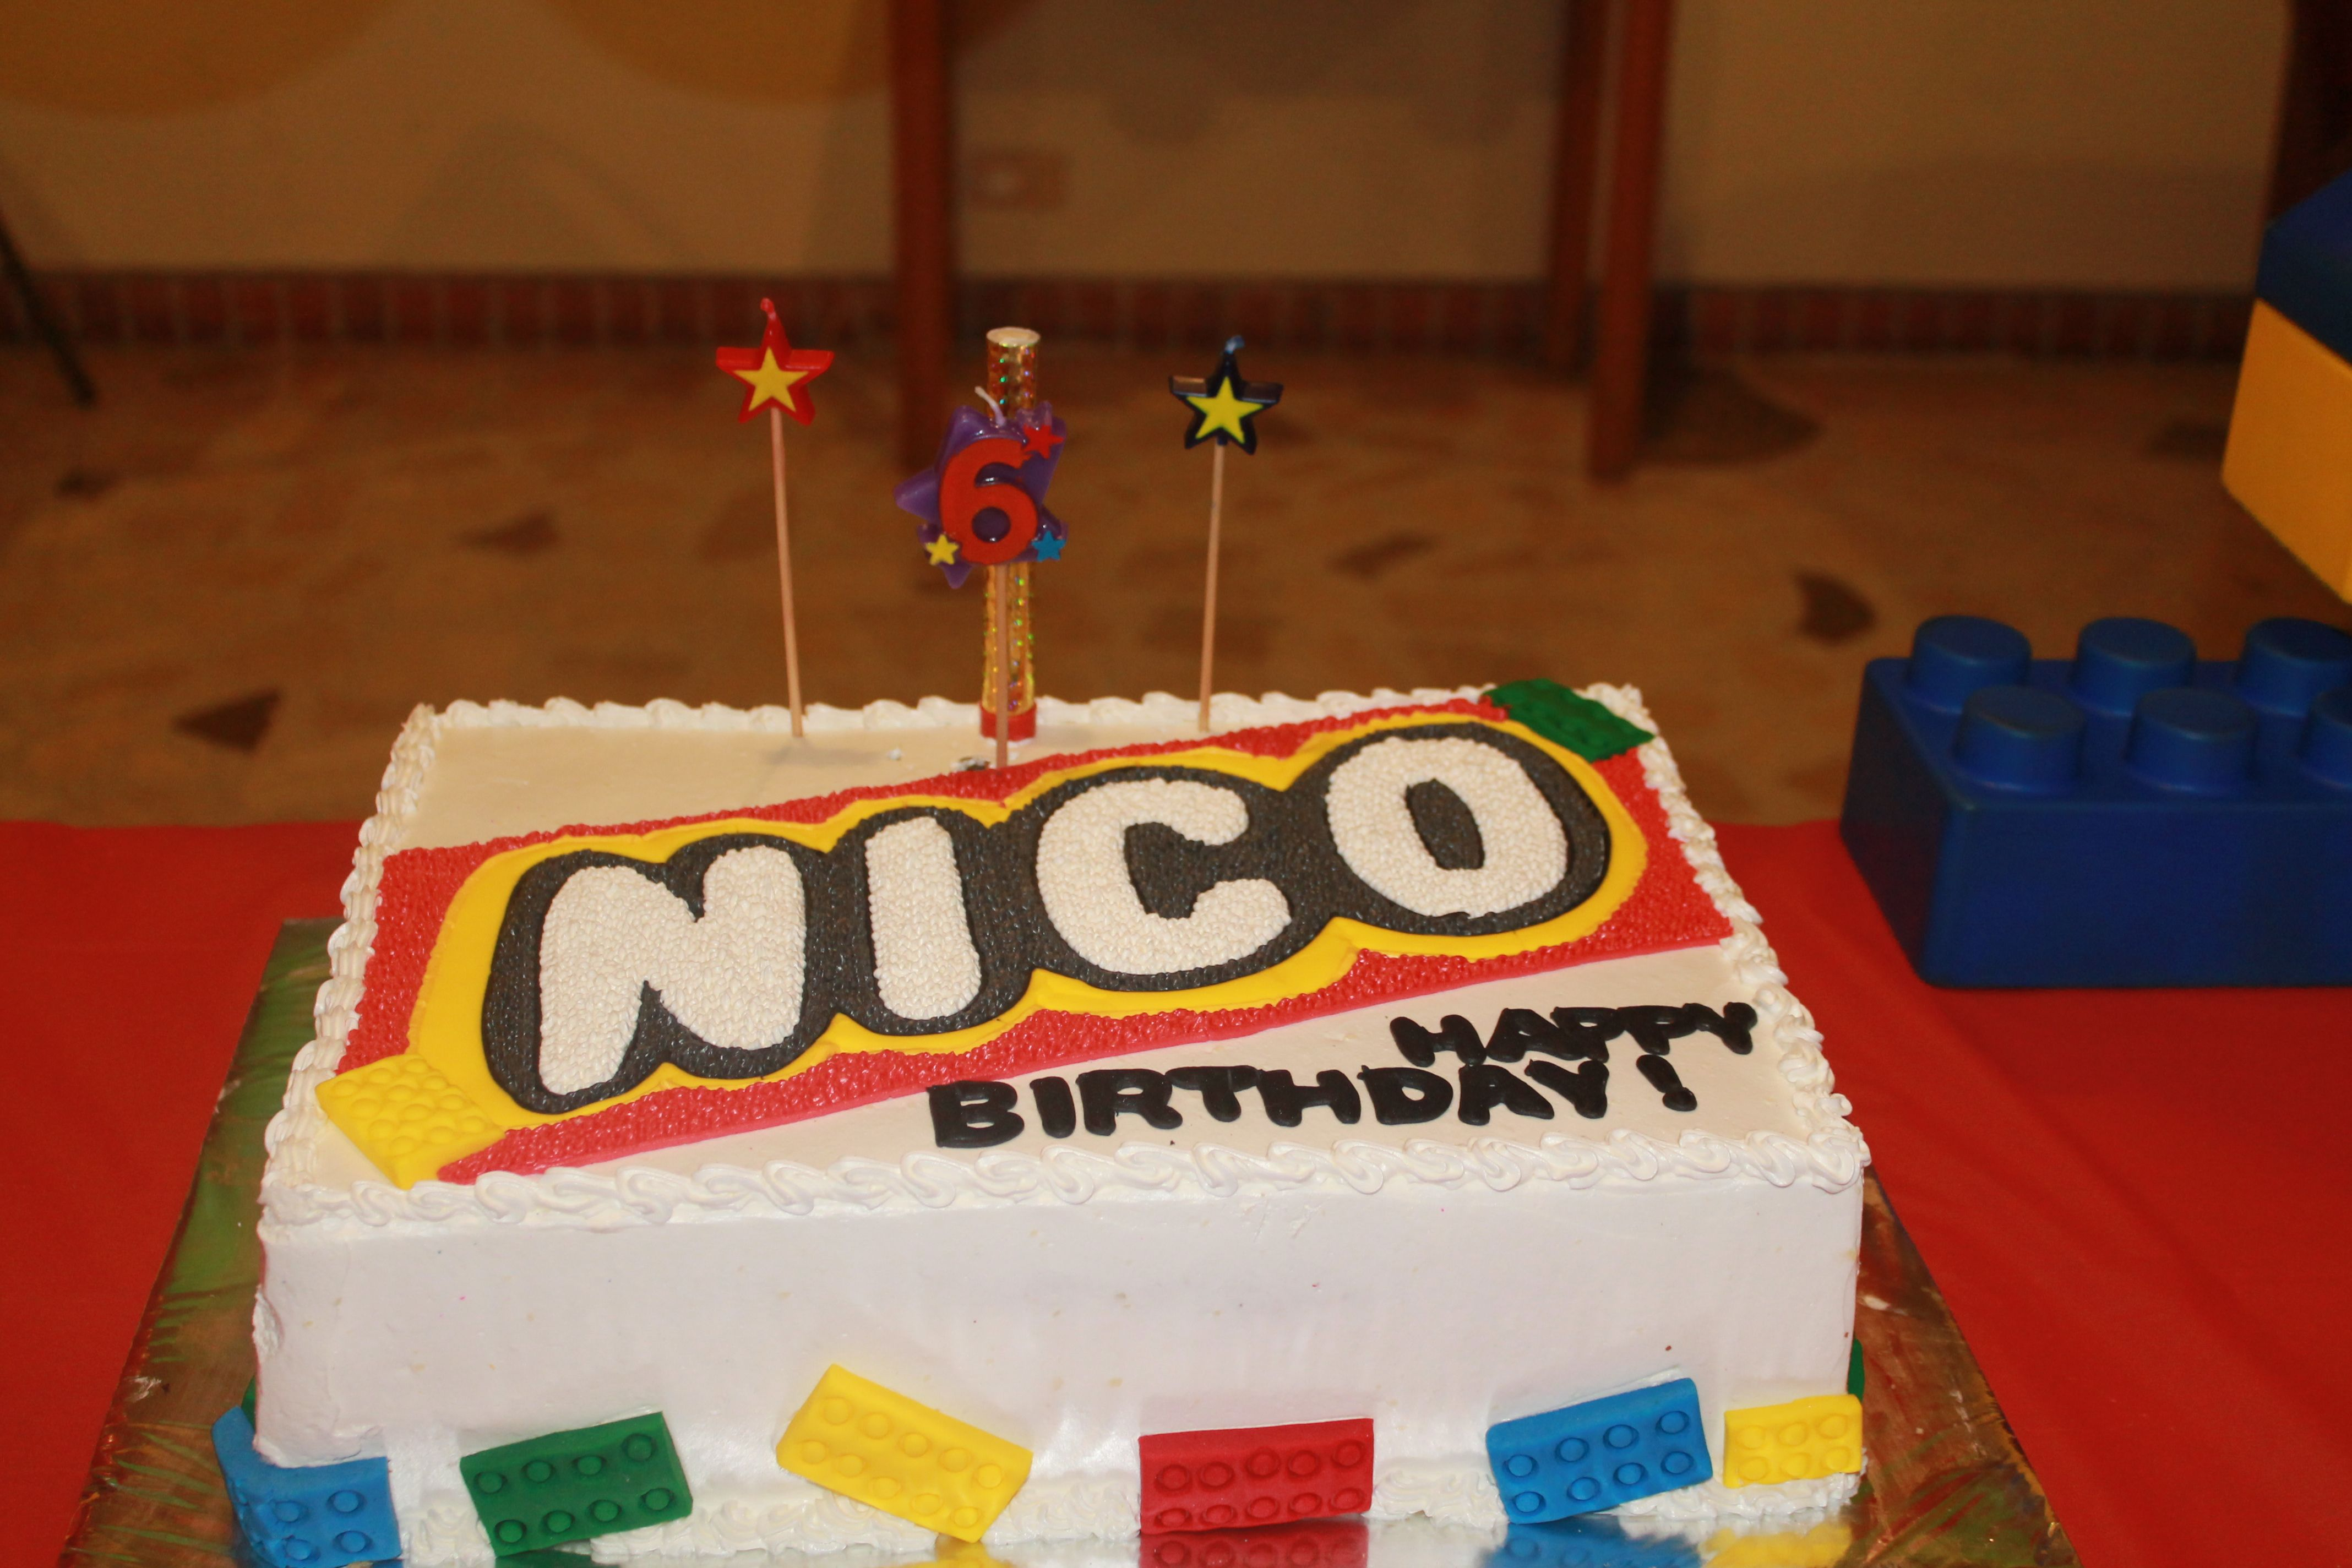 Lego Cake. Downloaded Lego letters